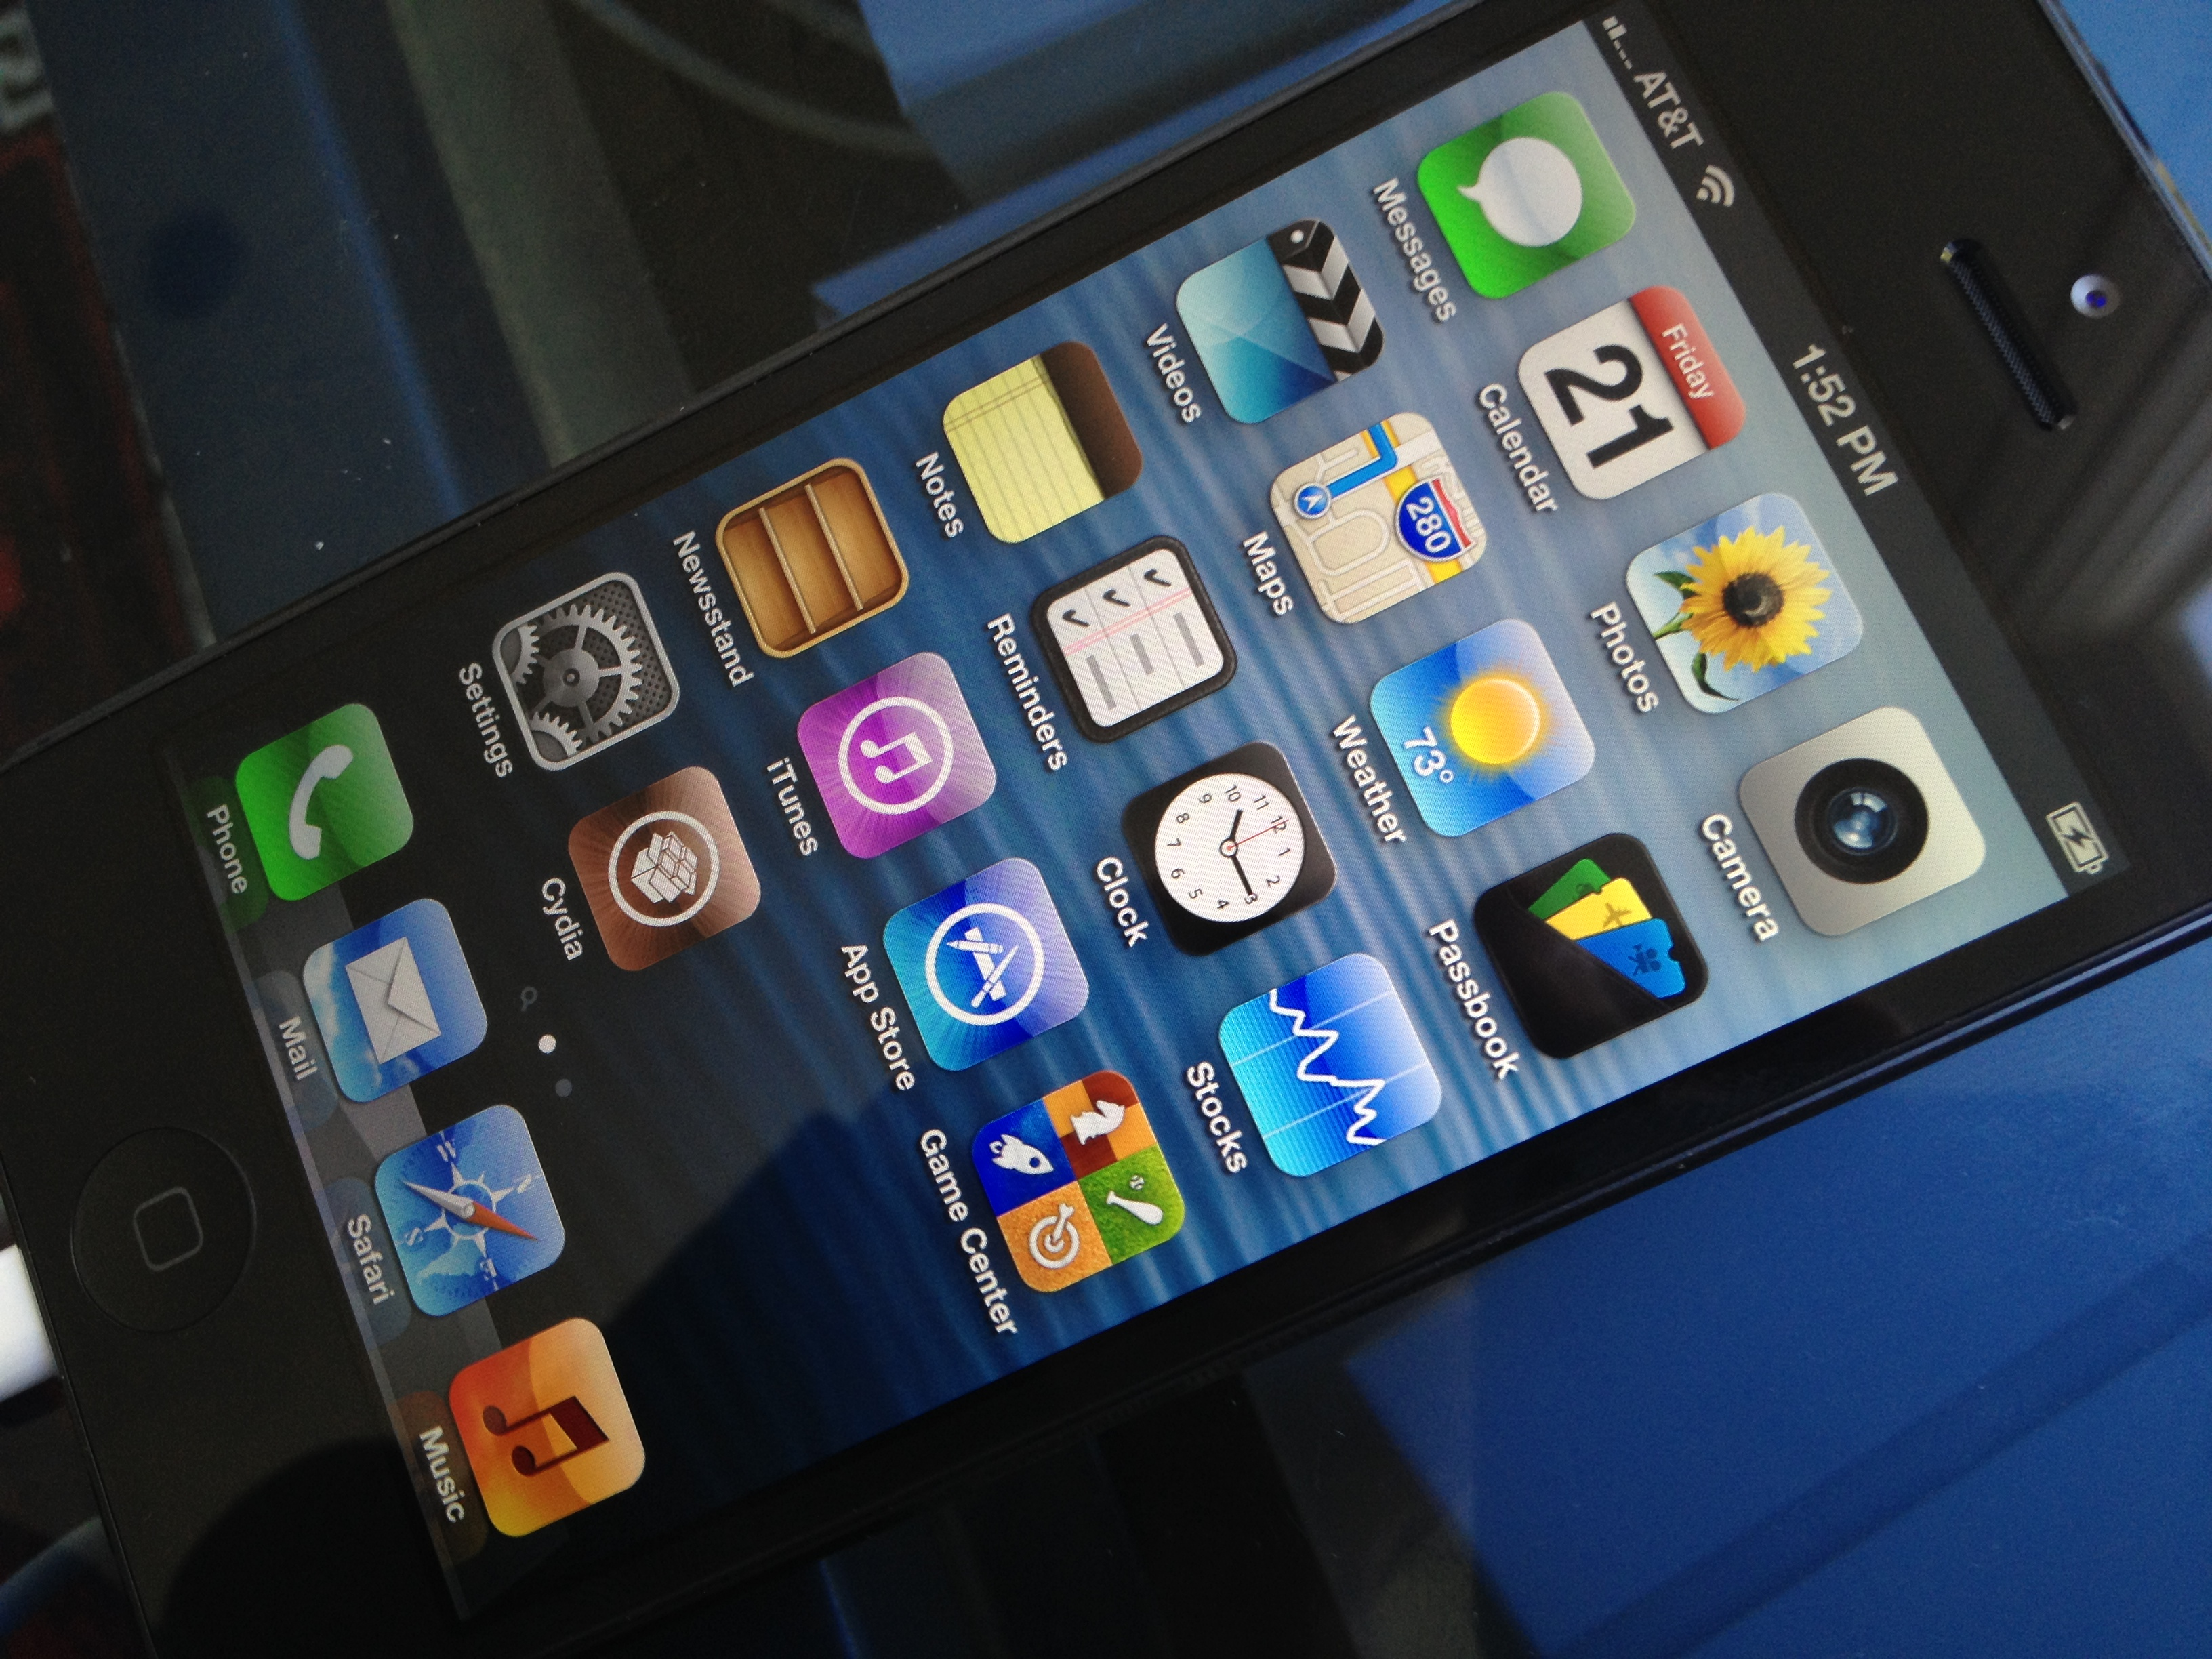 iPhone5_jailbreak.08 copy